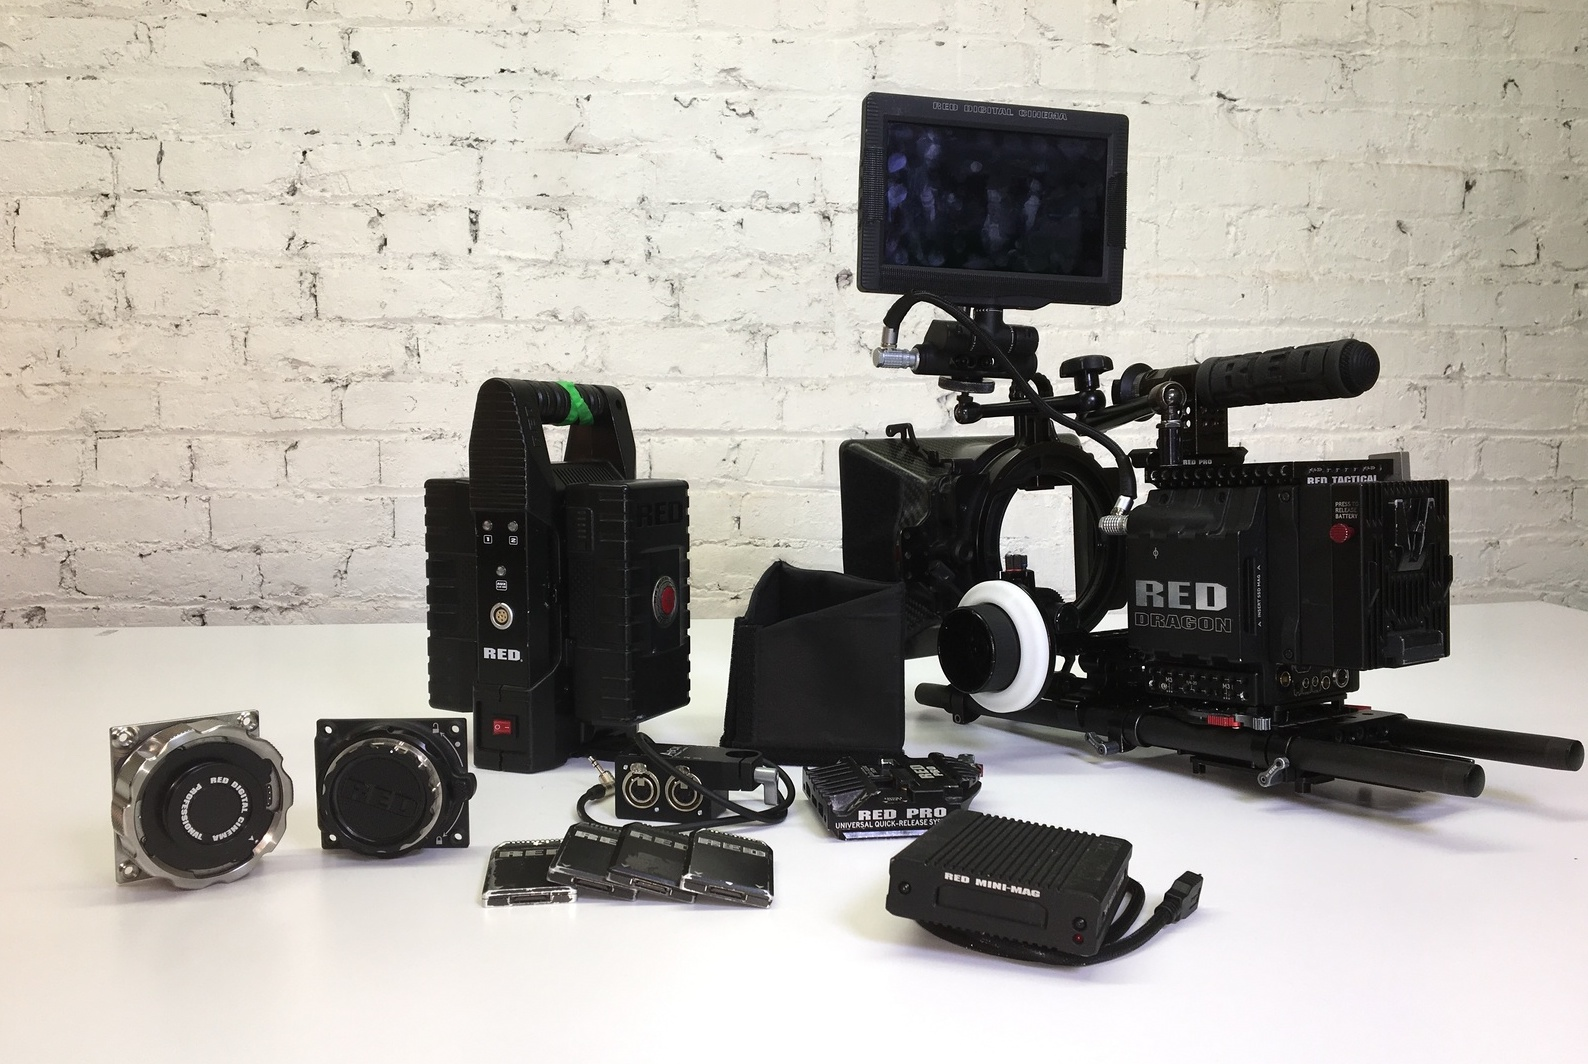 RED EPIC - Used in feature films, RED is the leading manufacturer of professional digital cinema cameras. Used on such films as Jurassic World, Transformers, Gone Girl, and The Great Gatsby